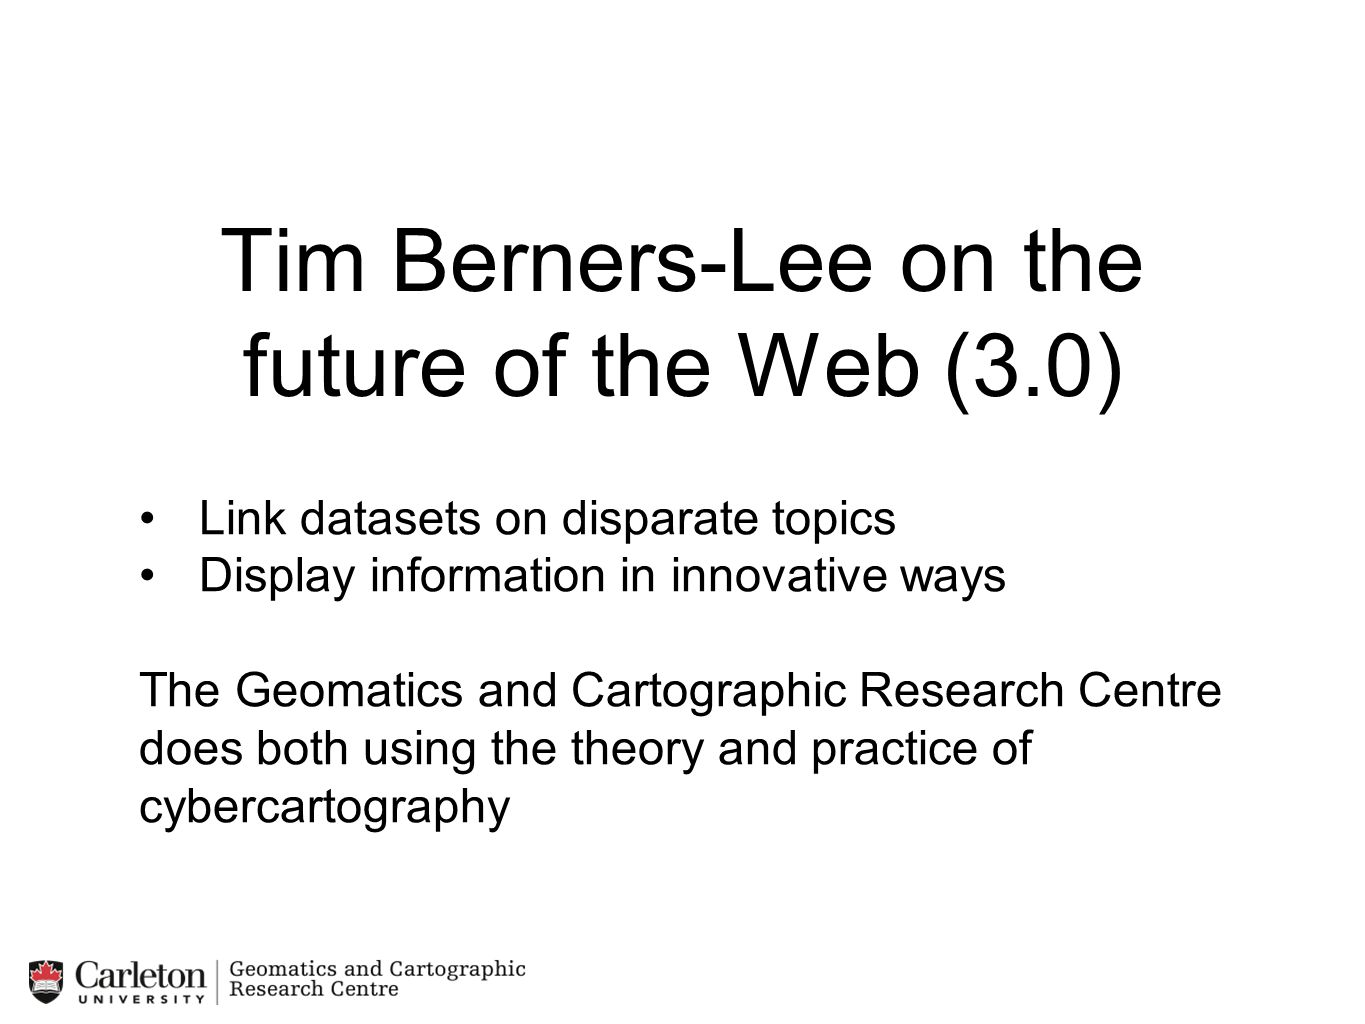 Tim Berners-Lee on the future of the Web (3.0)